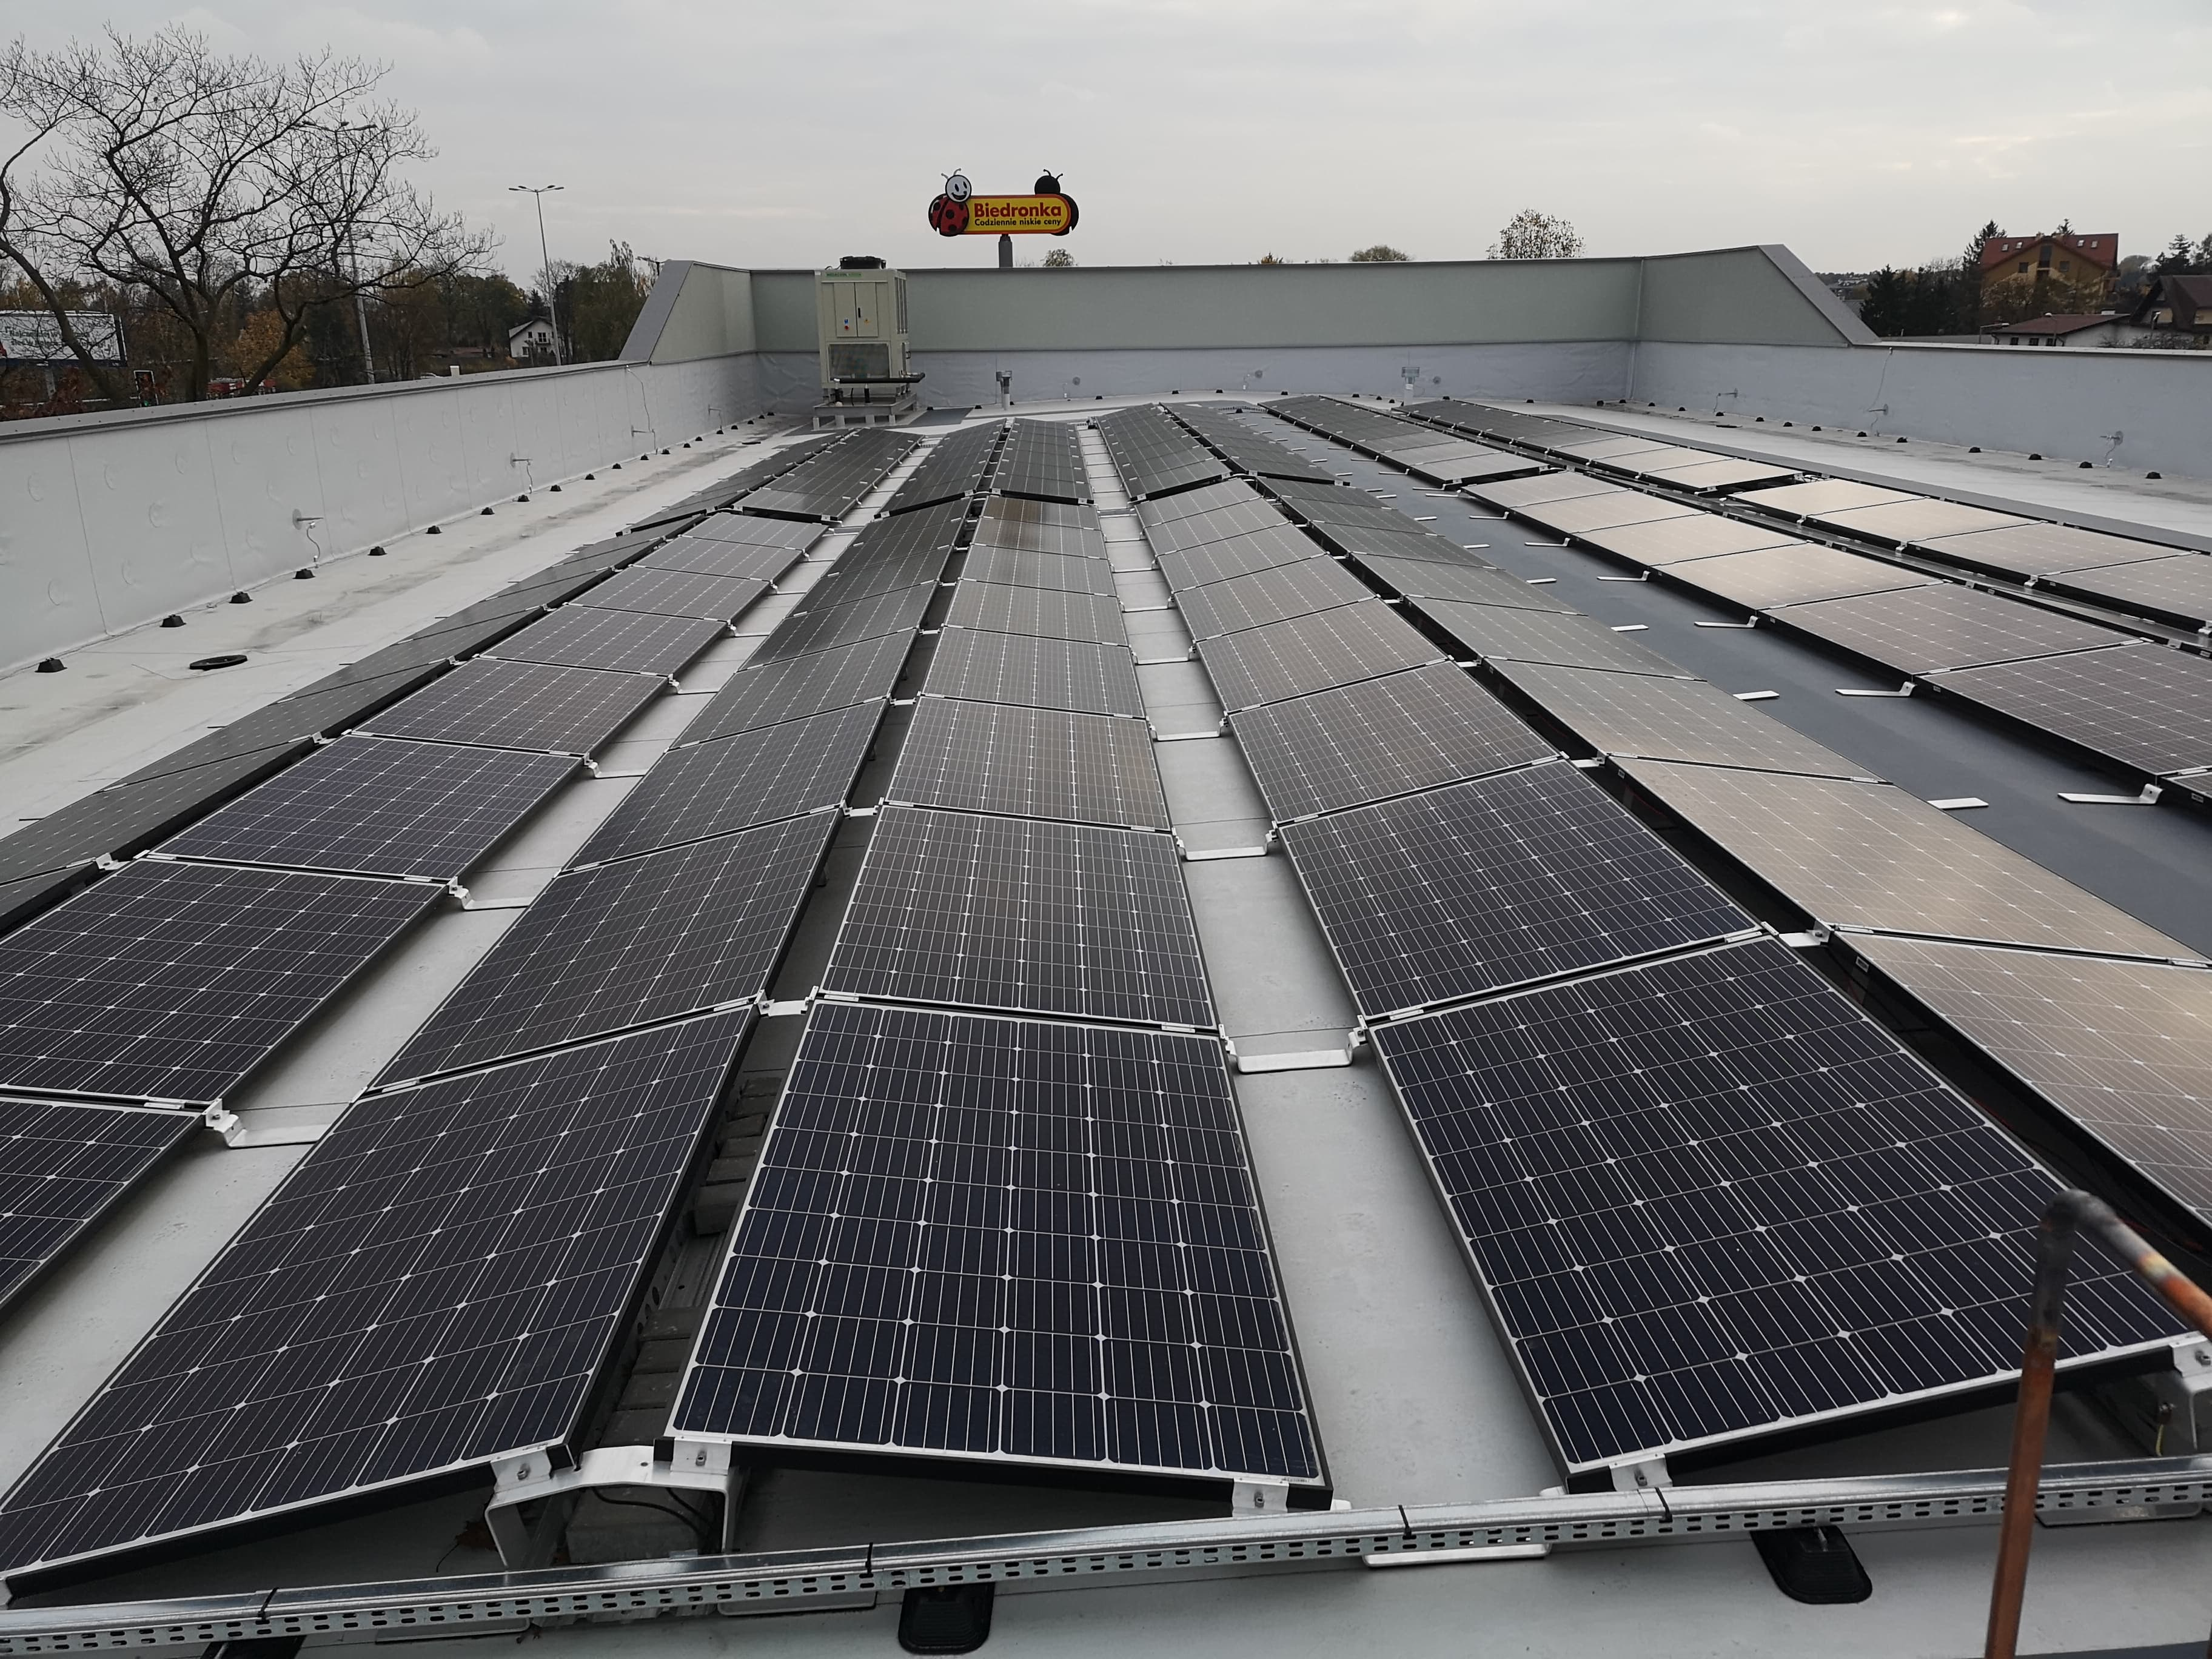 East-west installation with a maximum power of 49 kWp mounted on the flat roof of a service building in Warsaw.